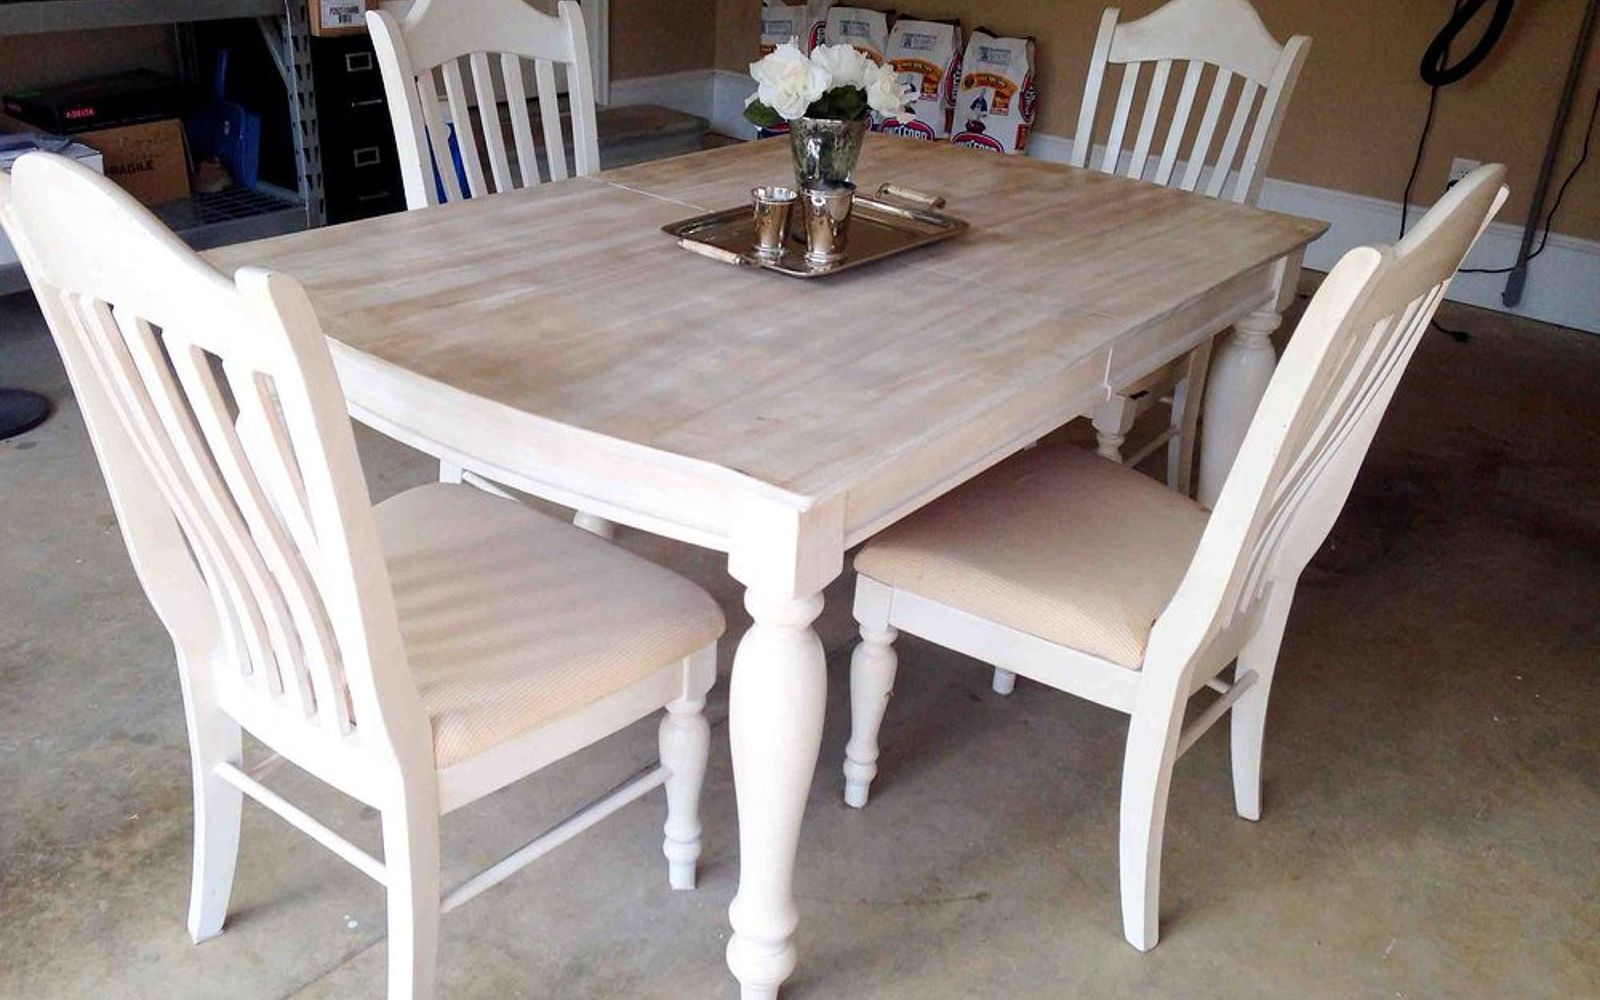 s 13 gorgeous ways to bring your worn kitchen table back to life, kitchen design, painted furniture, Sand it down and use a beachy mix of stains